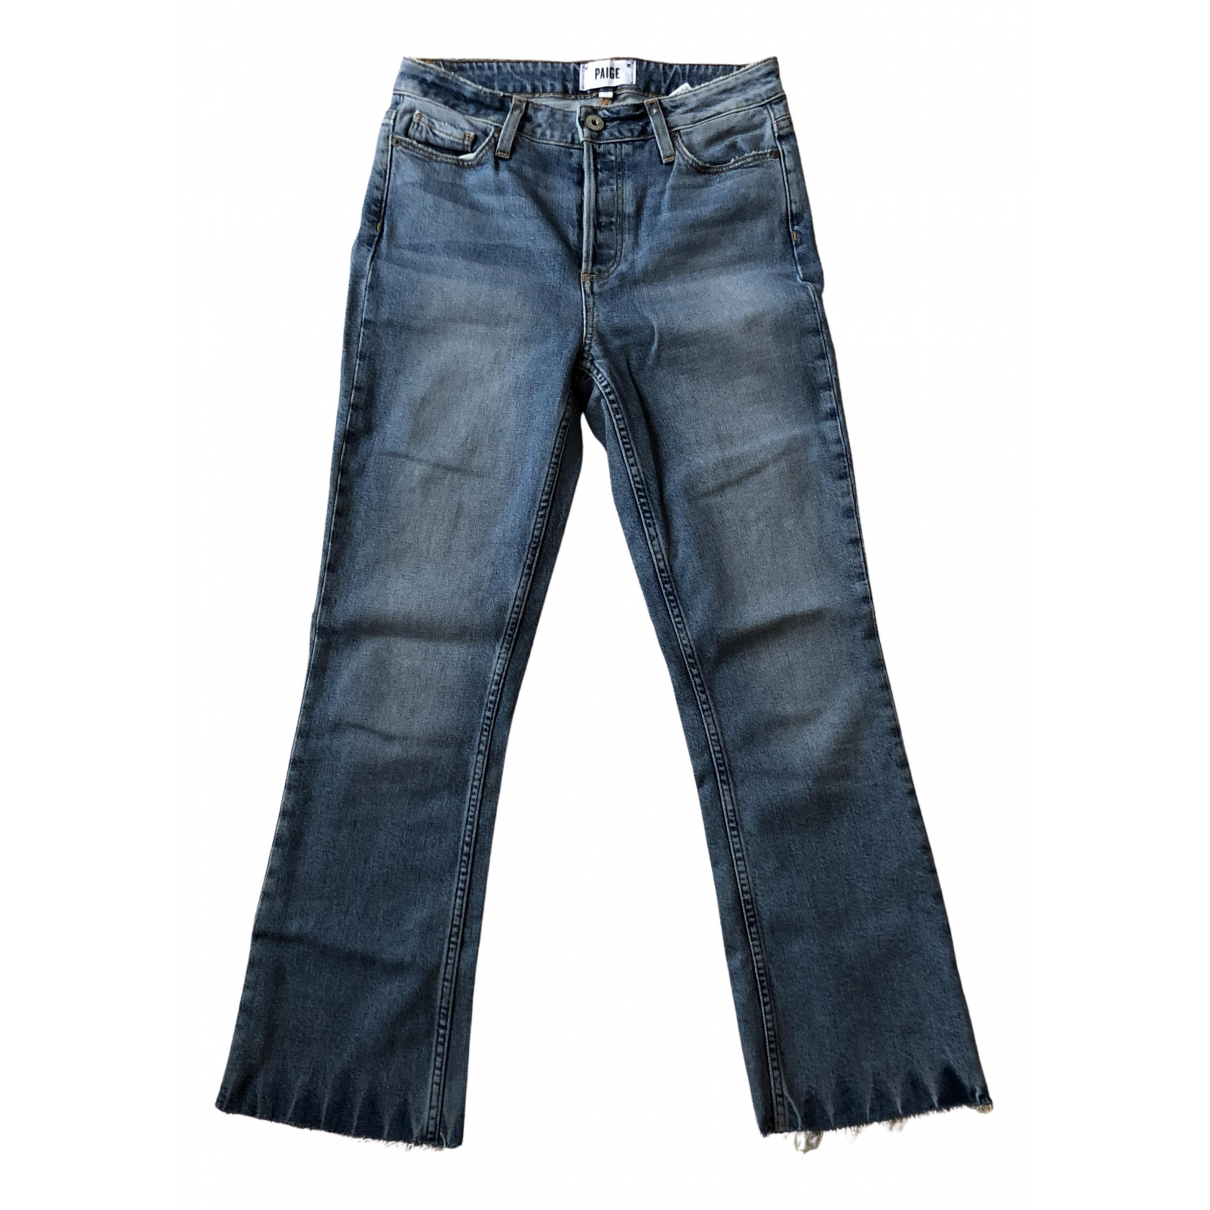 Paige Jeans N Blue Cotton - elasthane Jeans for Women 26 US